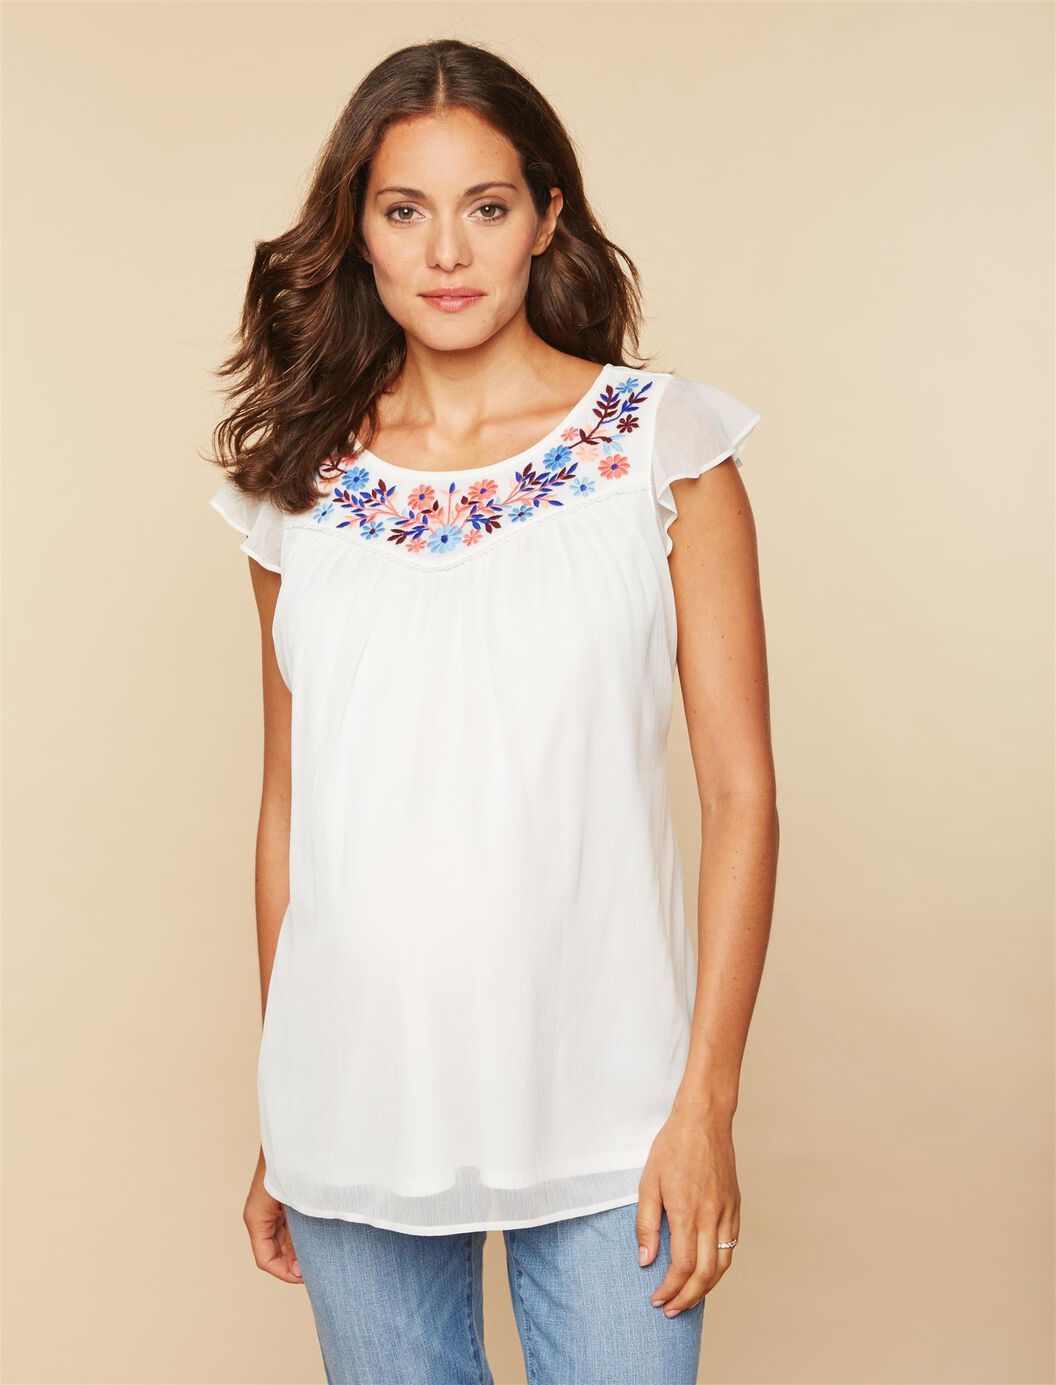 Embroidery Maternity Top at Motherhood Maternity in Victor, NY | Tuggl